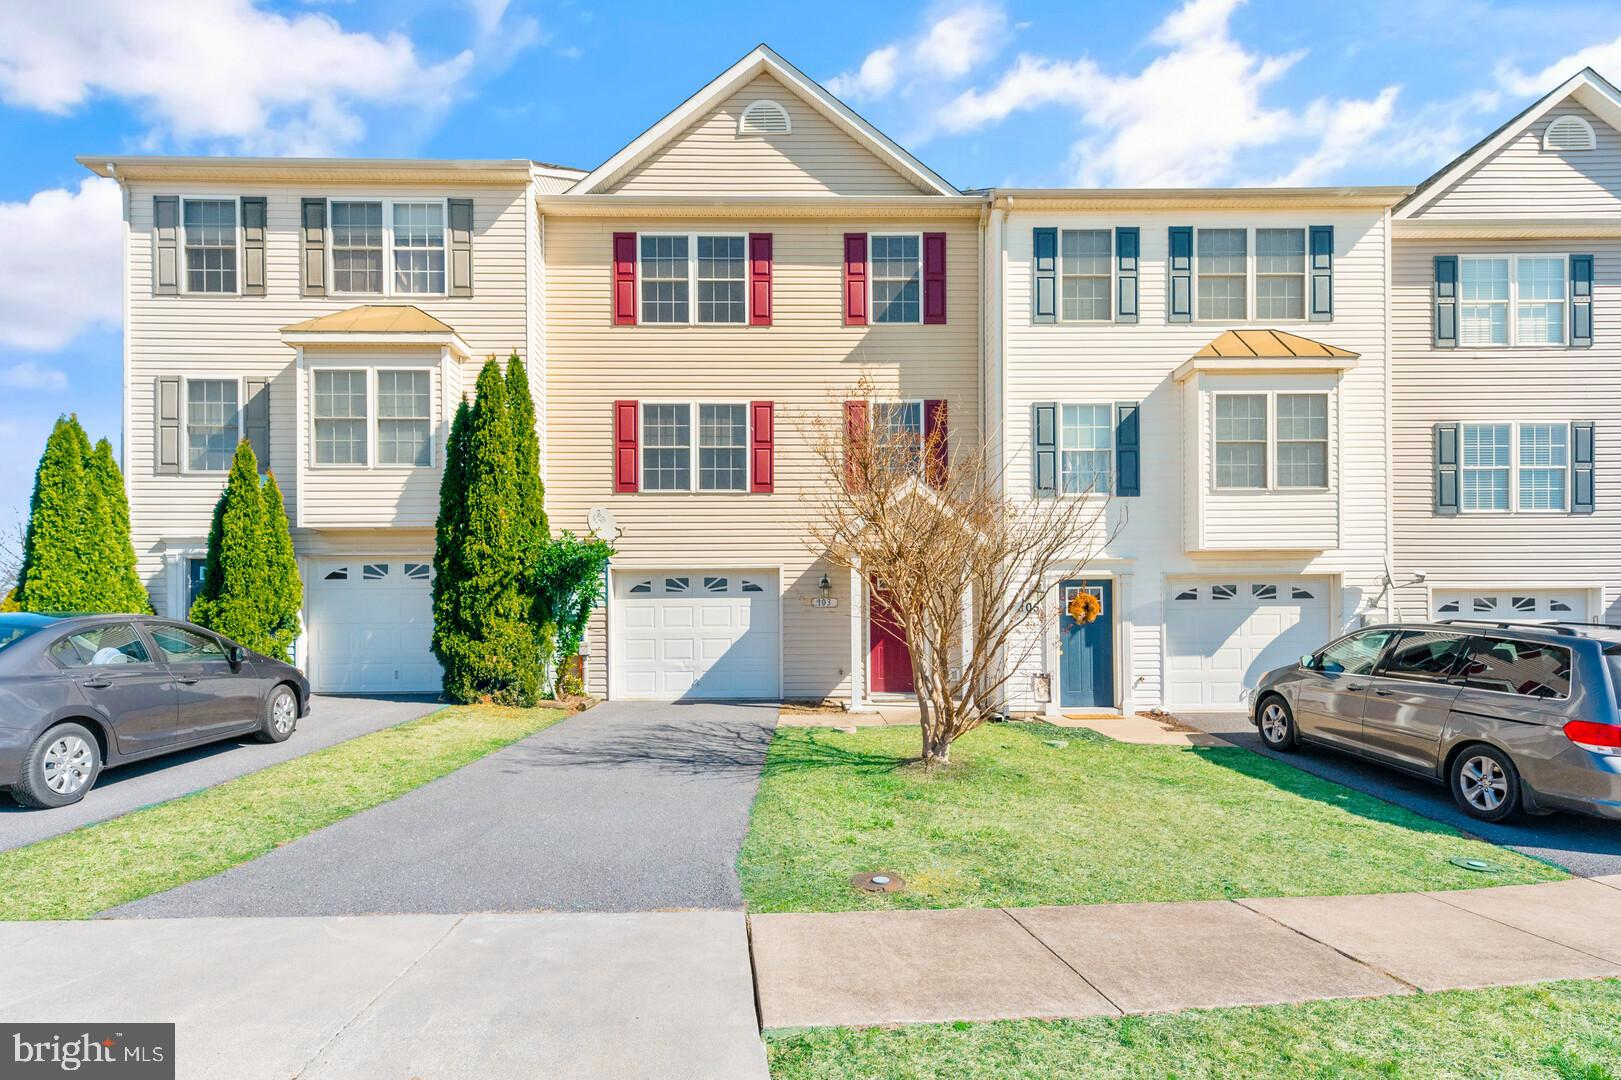 Come see this light and bright townhouse. It has 3 spacious bedrooms with 1 full bath. Main level ha